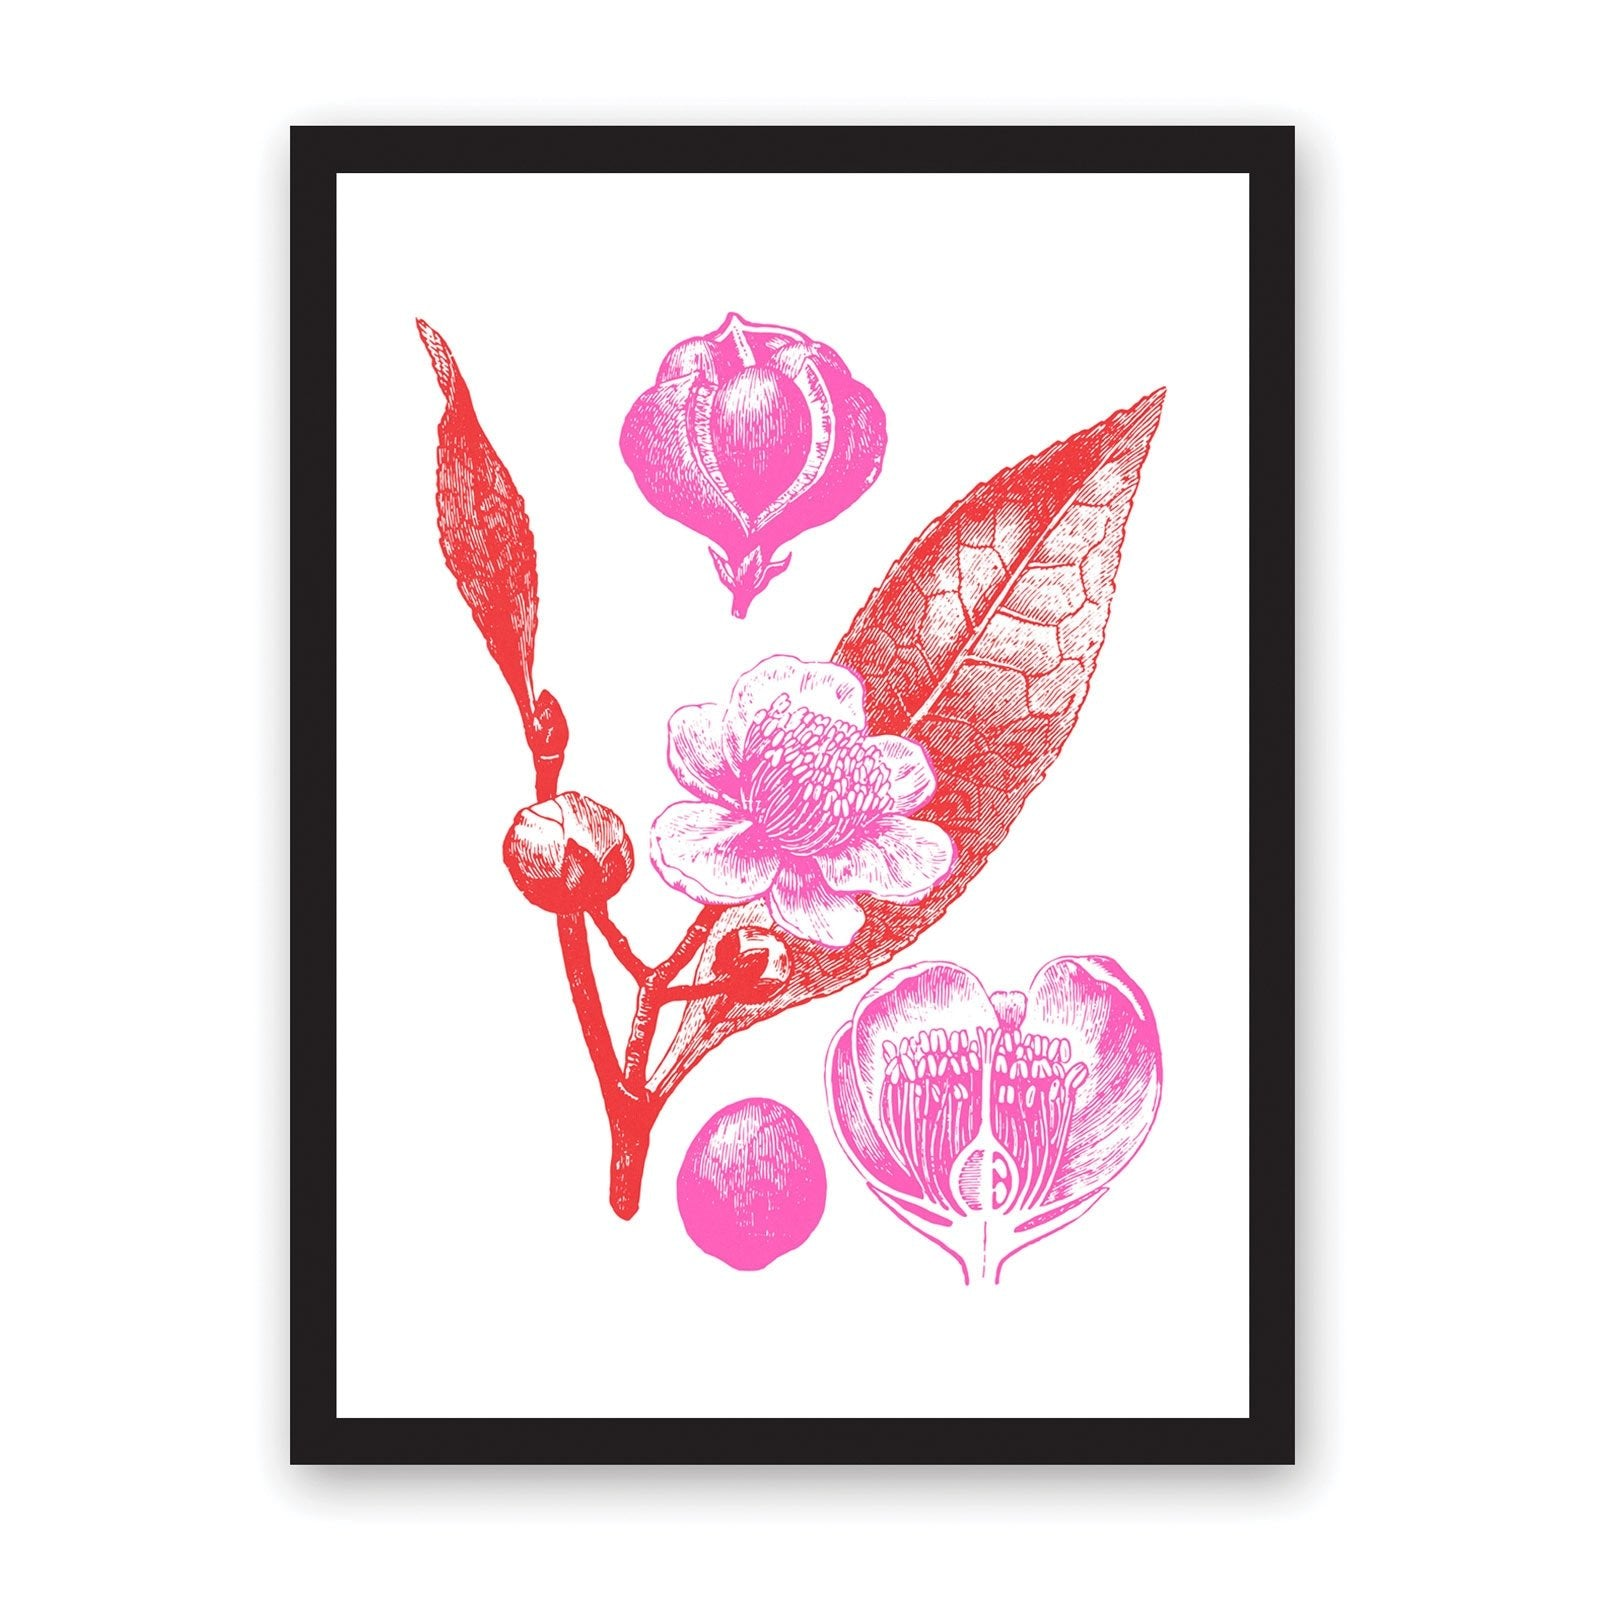 A3 Botanical Illustration Riso Print